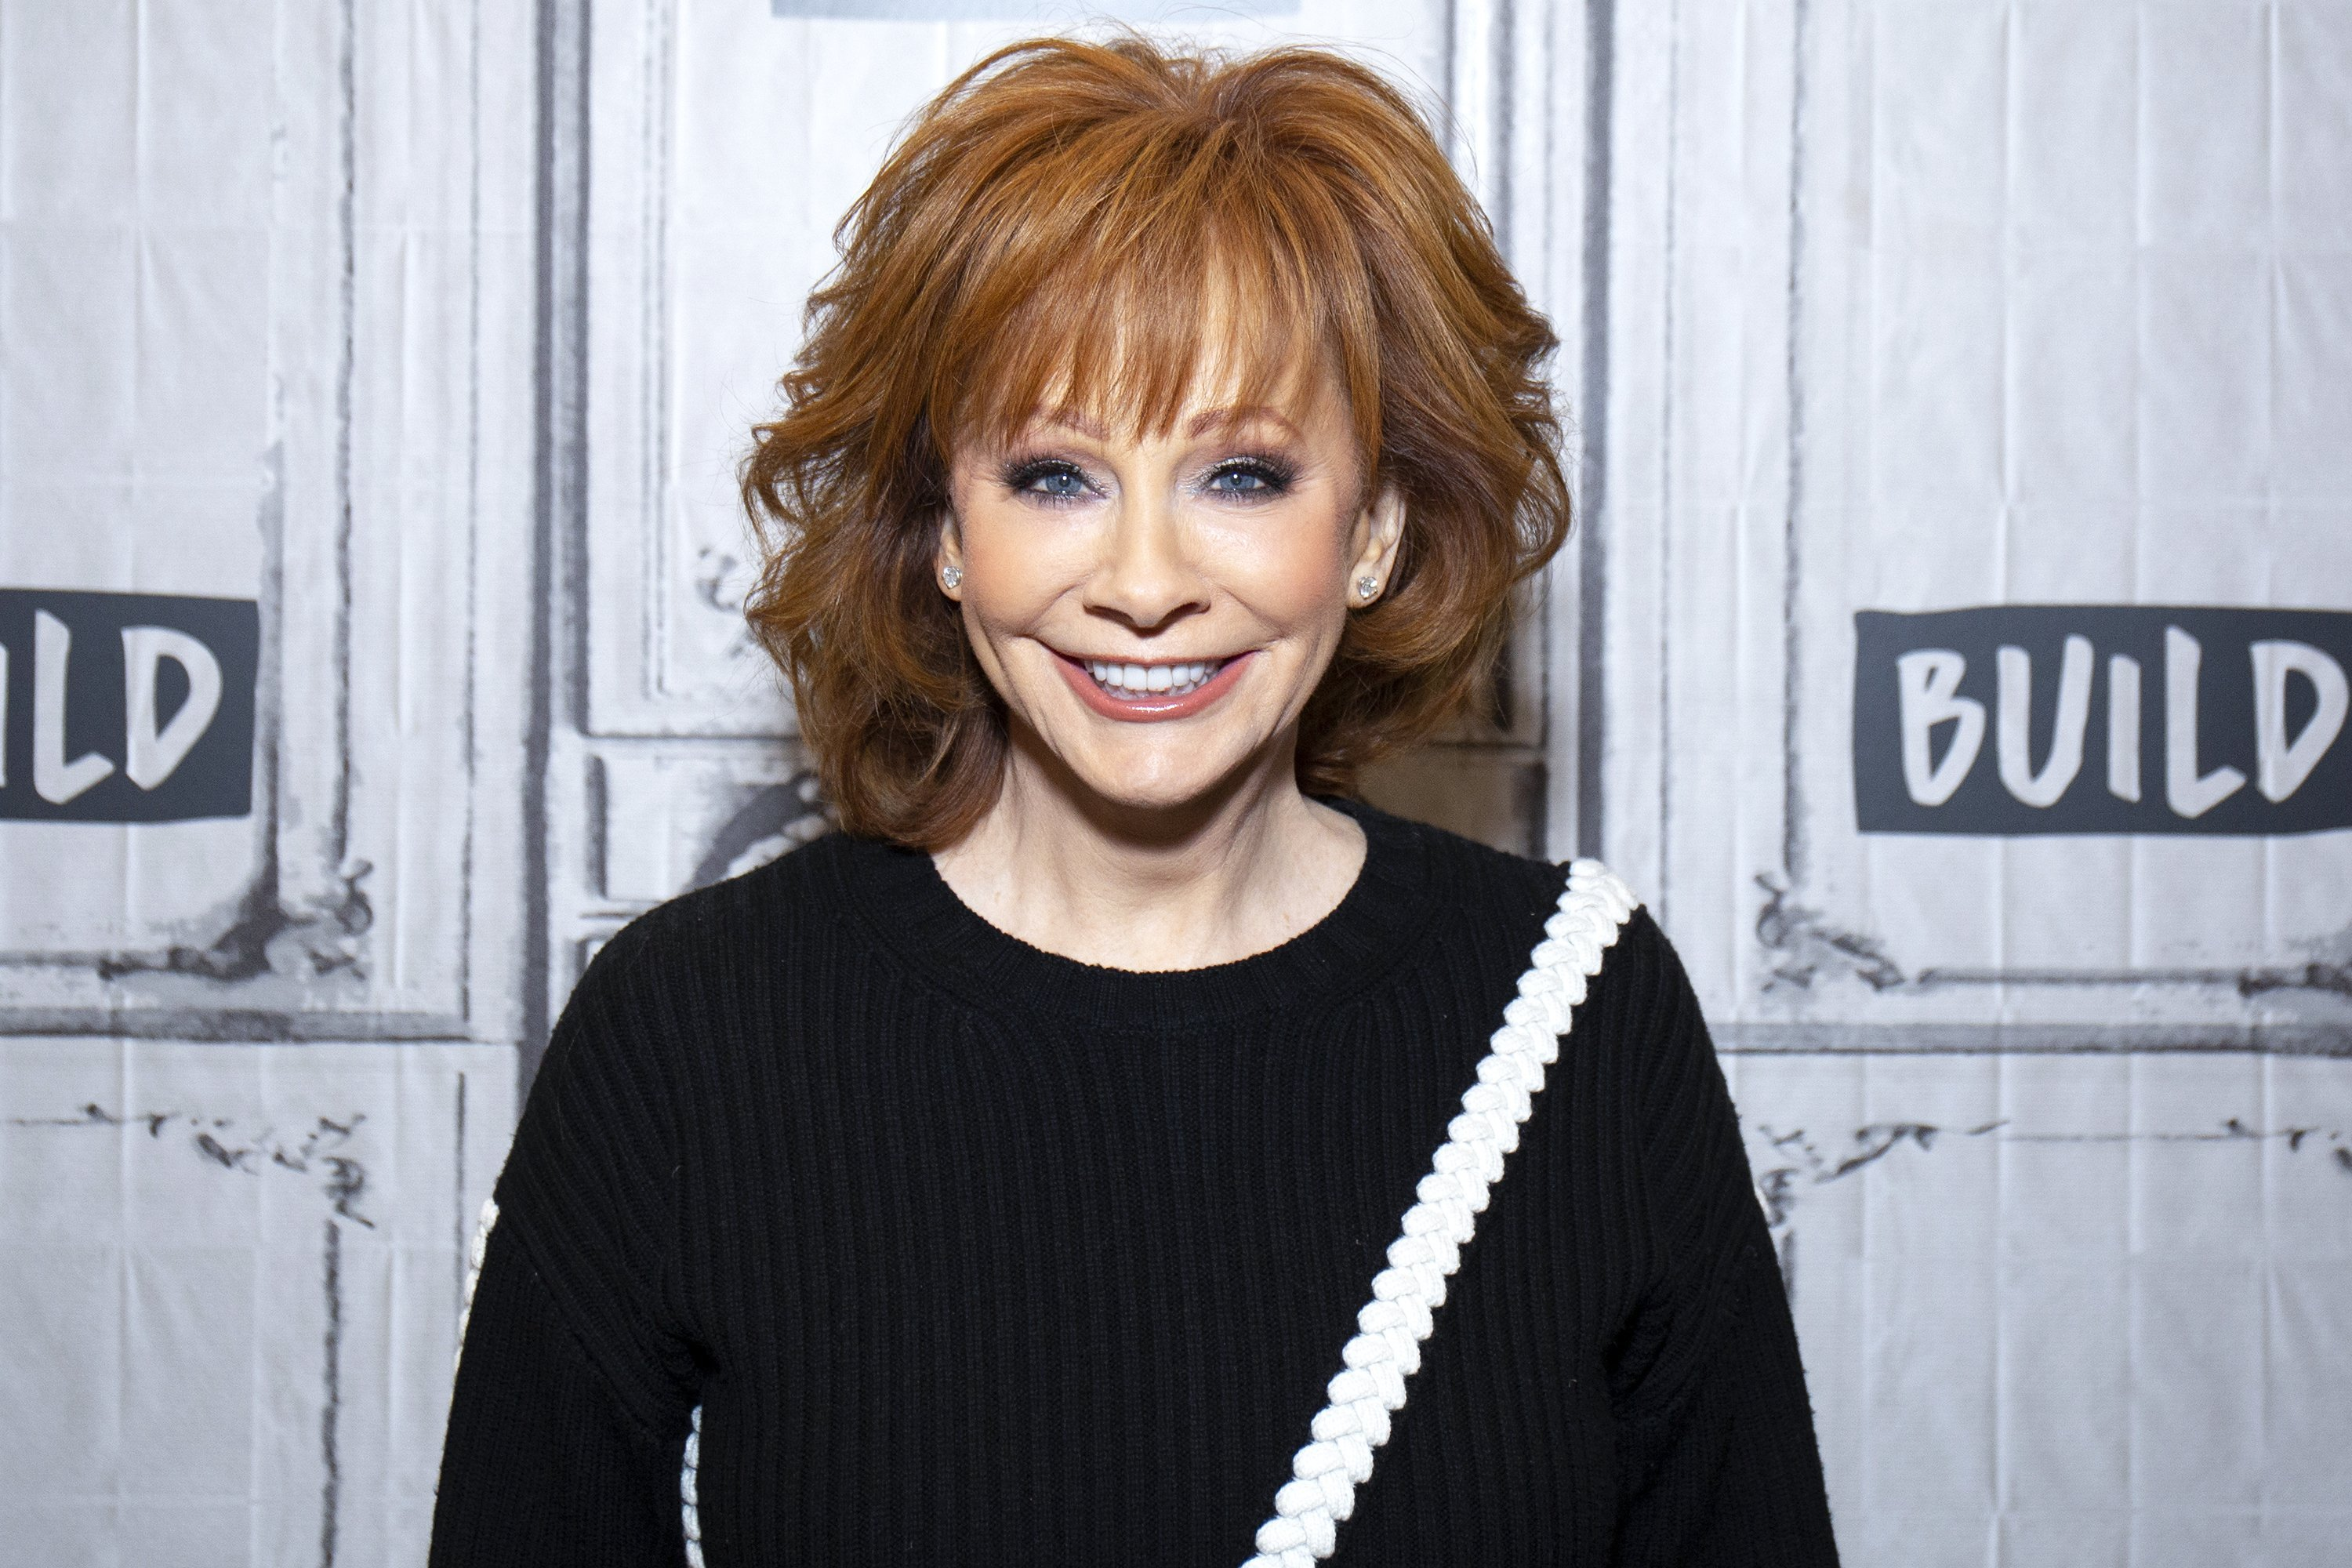 Reba McEntire at the Build Studio on February 20, 2019 in New York City | Photo: Getty Images